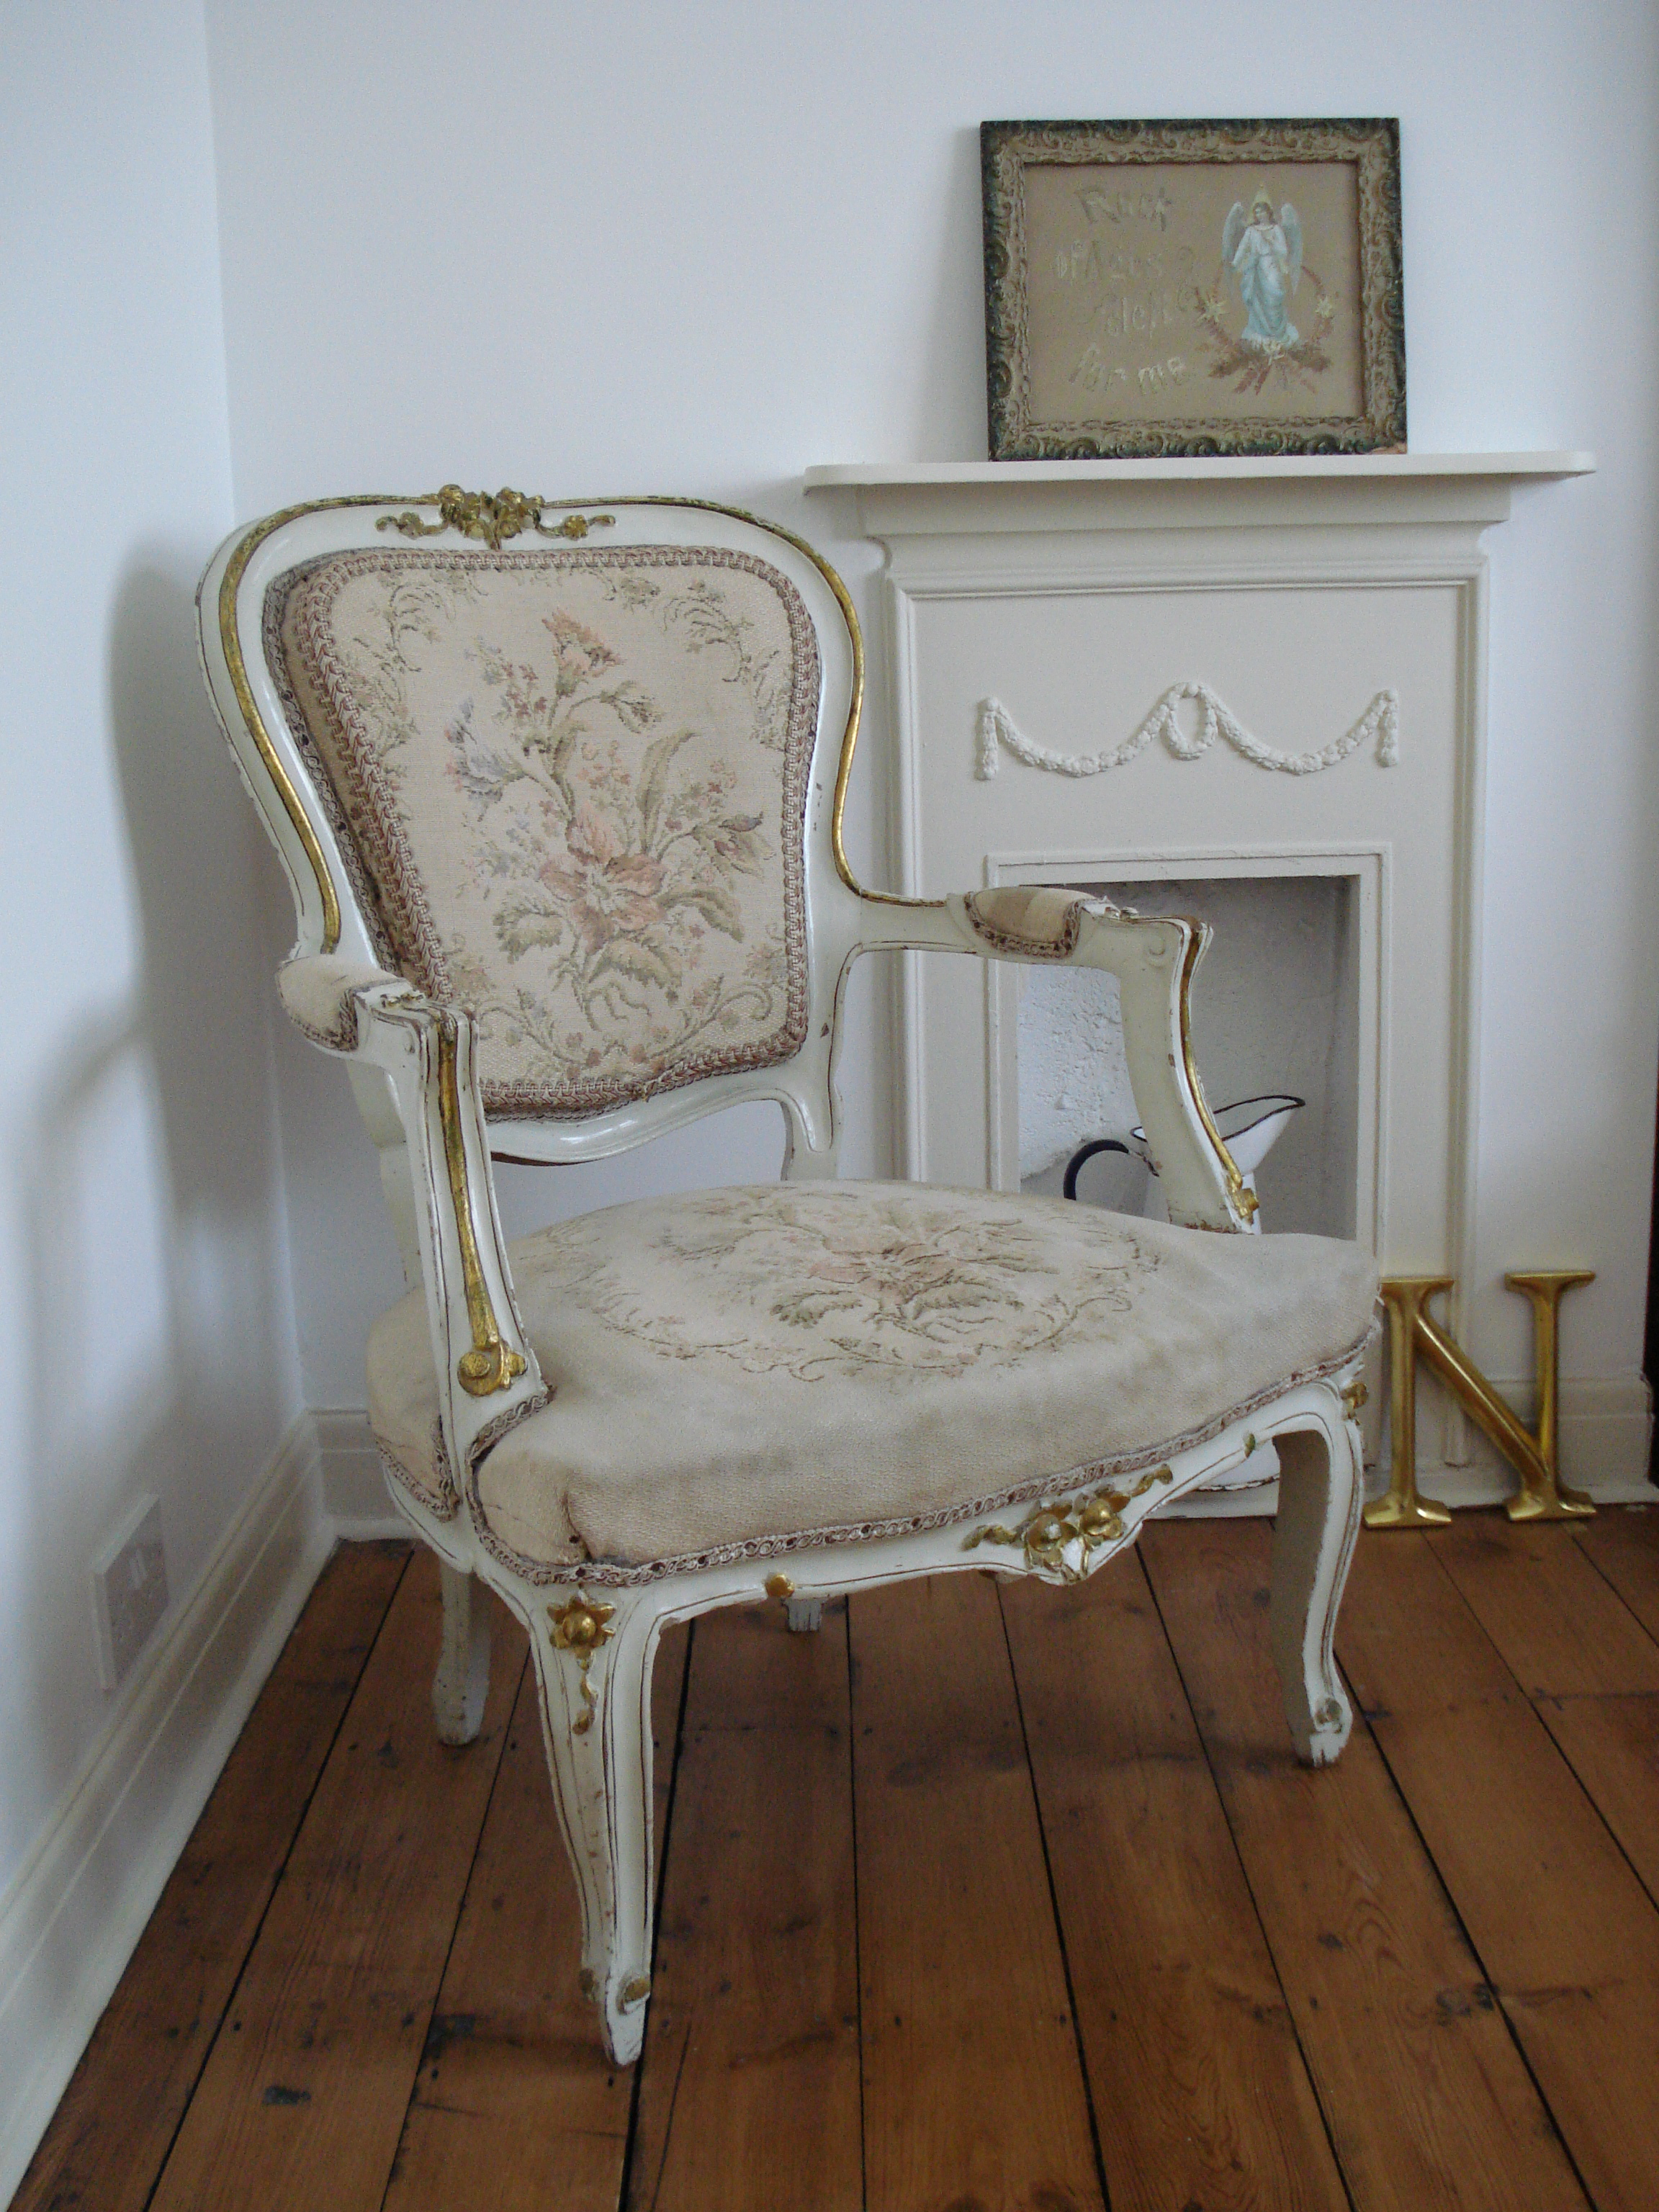 Antique french chair - My Antique French Chair And Vintage Indie My Vintage Pad Home Tour Natasha D From Oxford